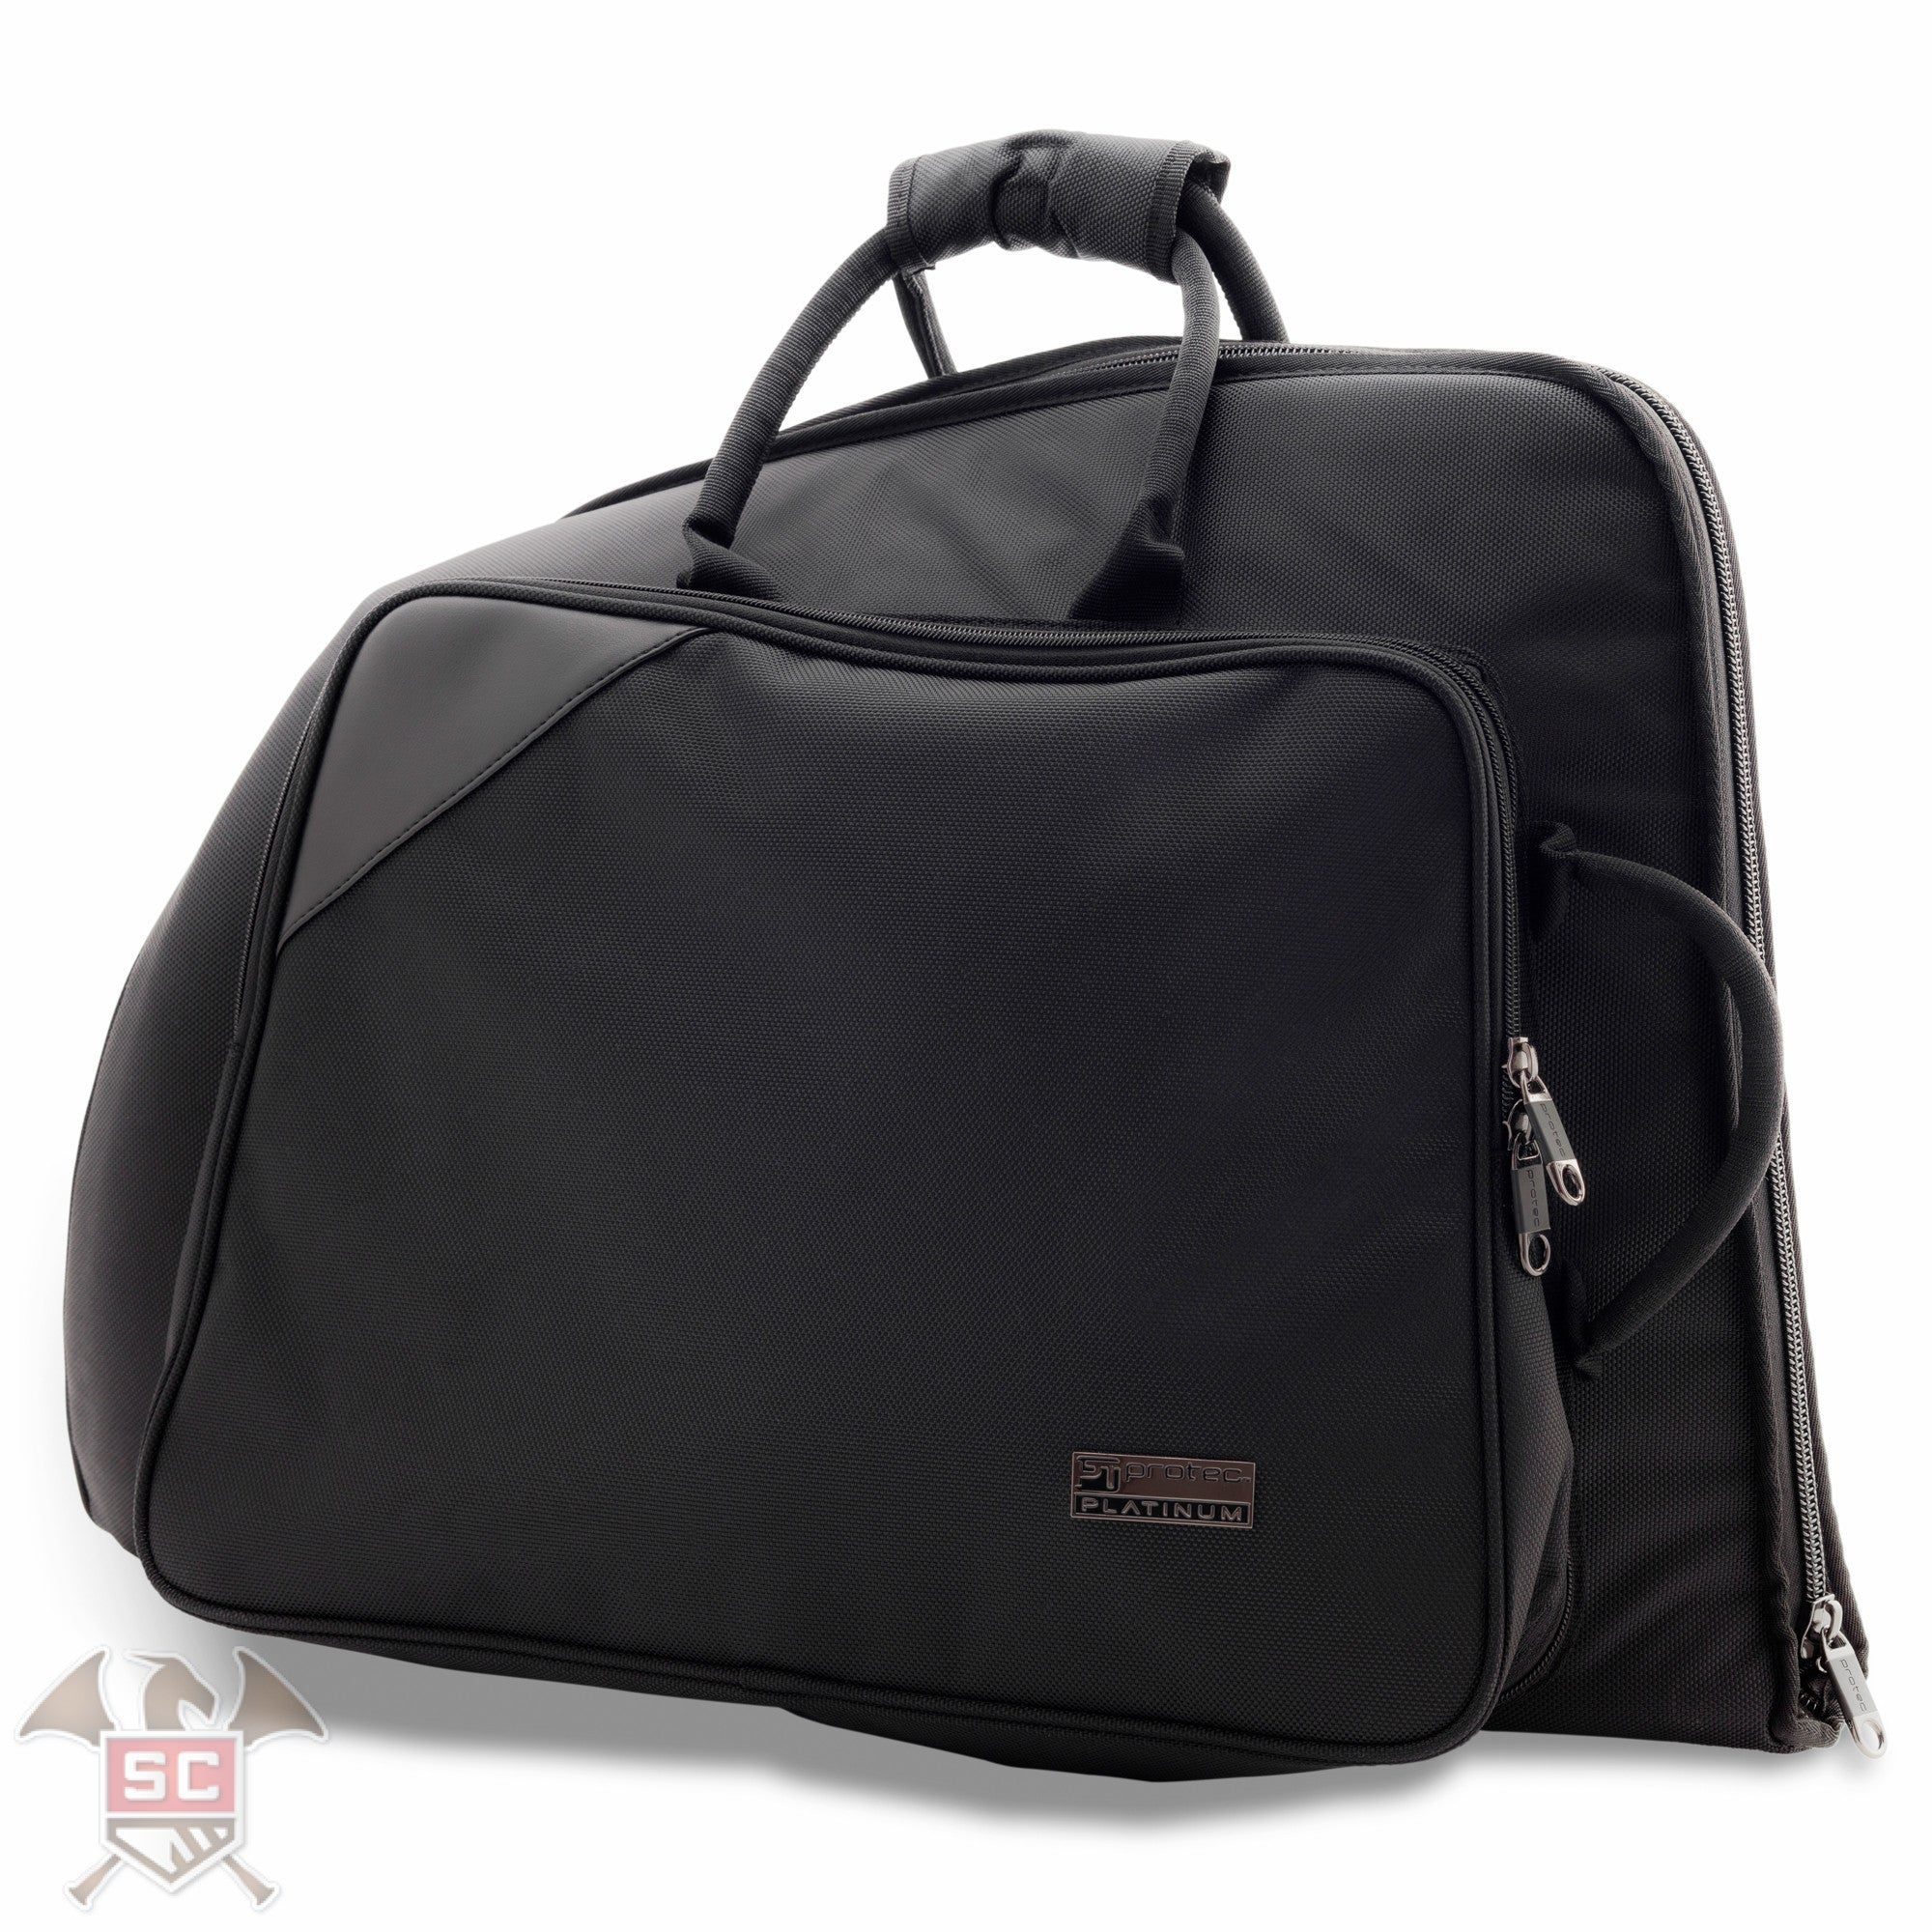 Protec PL246 French Horn Bag xUDSZj